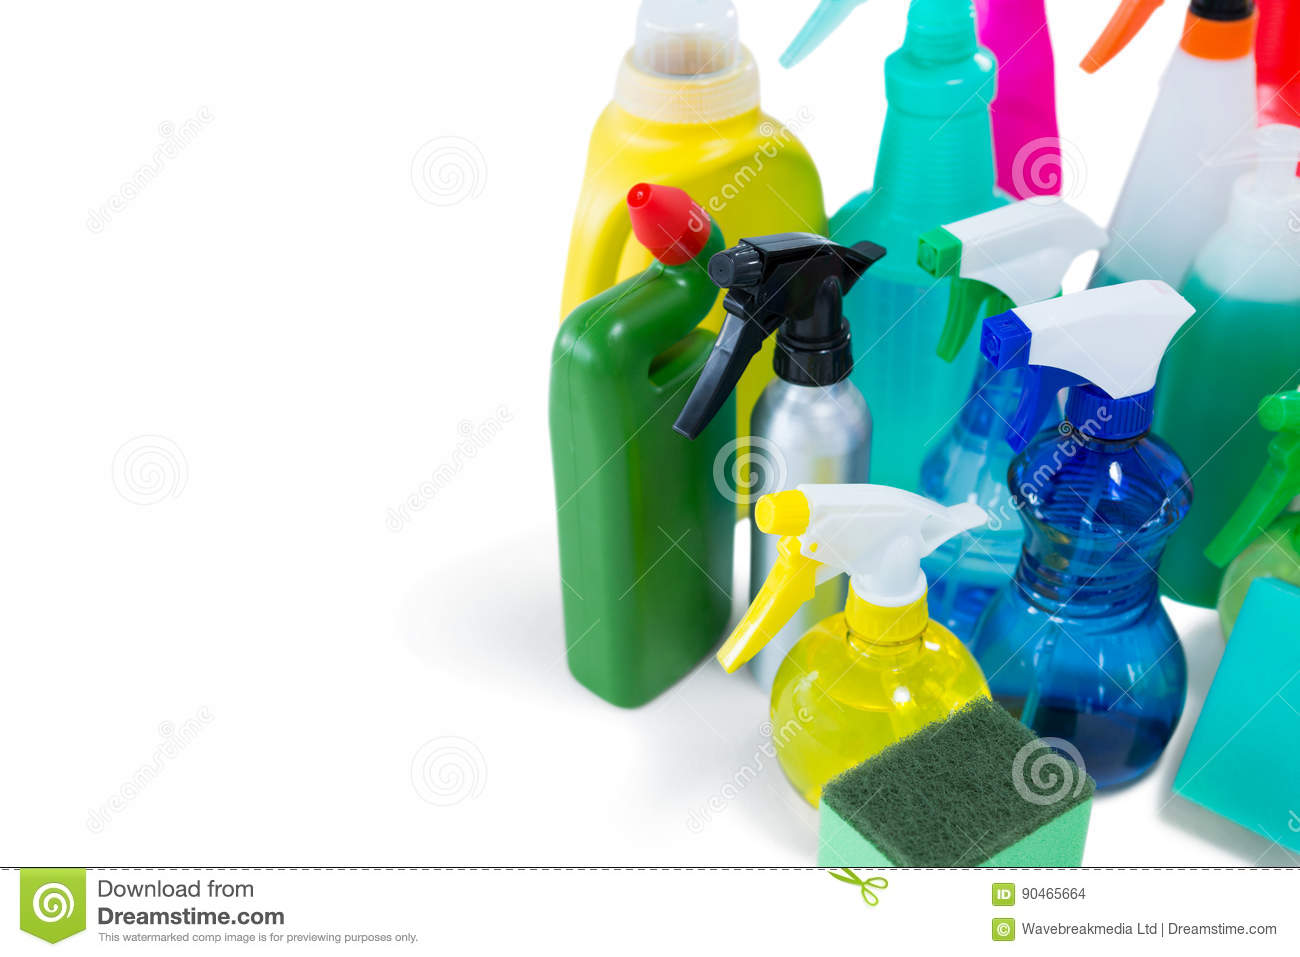 High angel view of colorful spray bottles with sponges and gloves